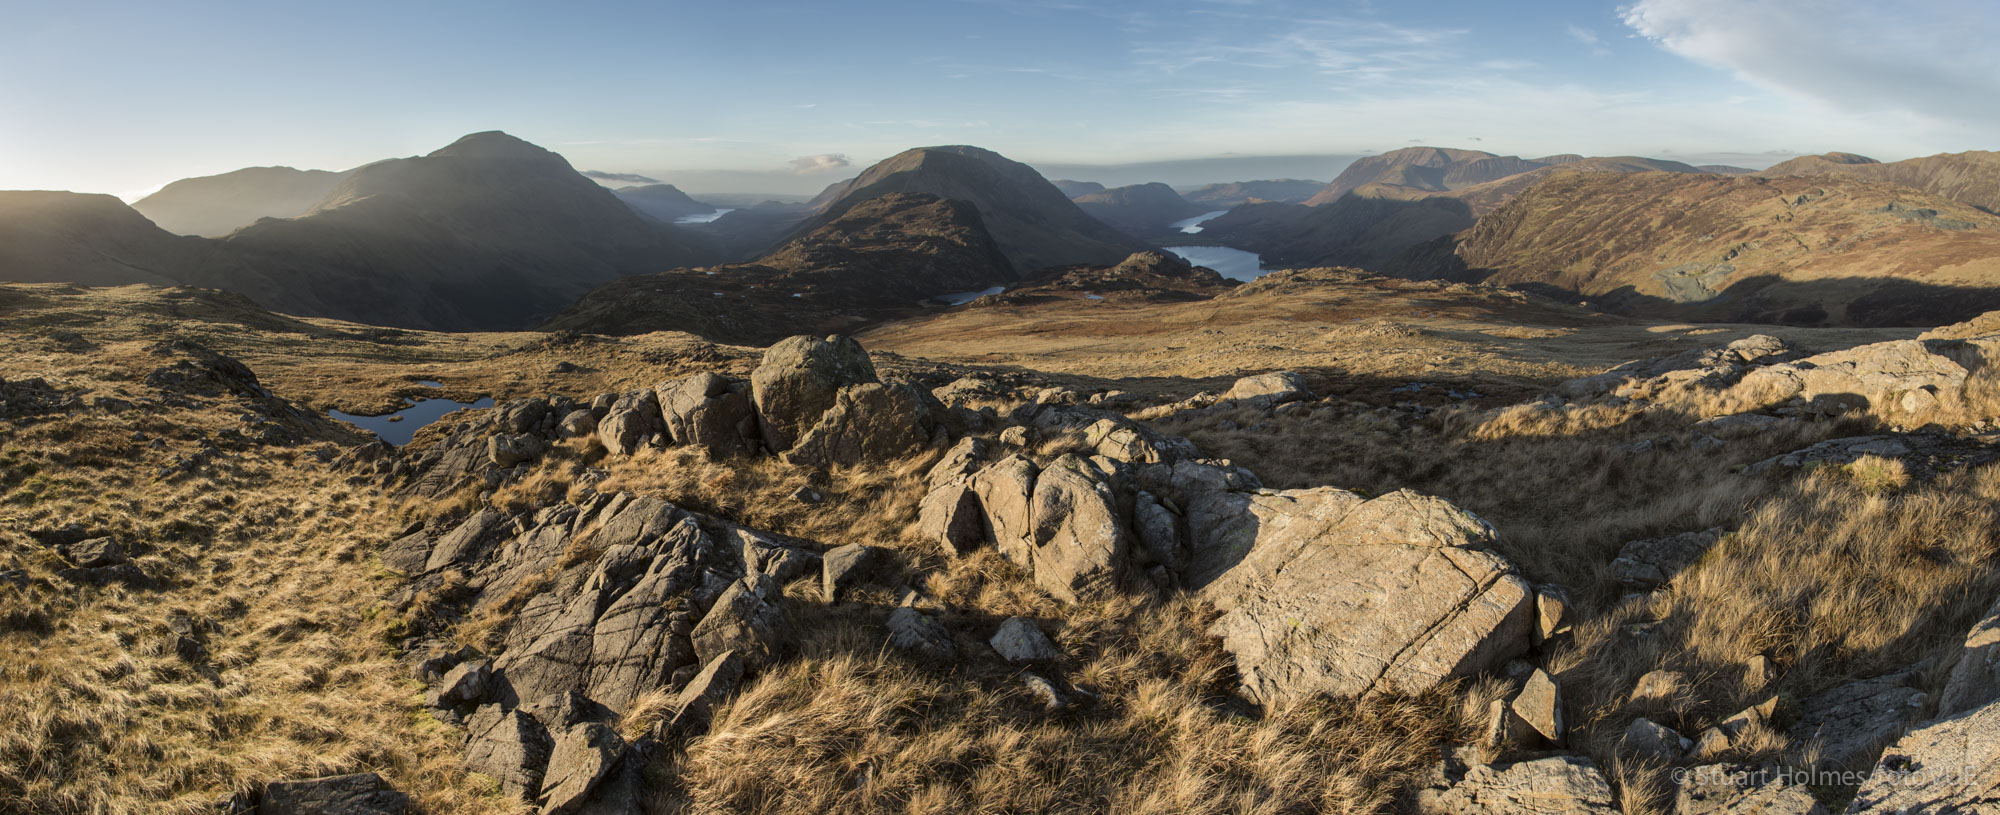 5-shot vertical panorama of the western fells including Buttermere and Ennerdale valleys. Taken from below Brandreth. Canon 5D Mk III, 24-105mm at 24mm, ISO 100, 1/60s at f/10, hand held. © Stuart Holmes.